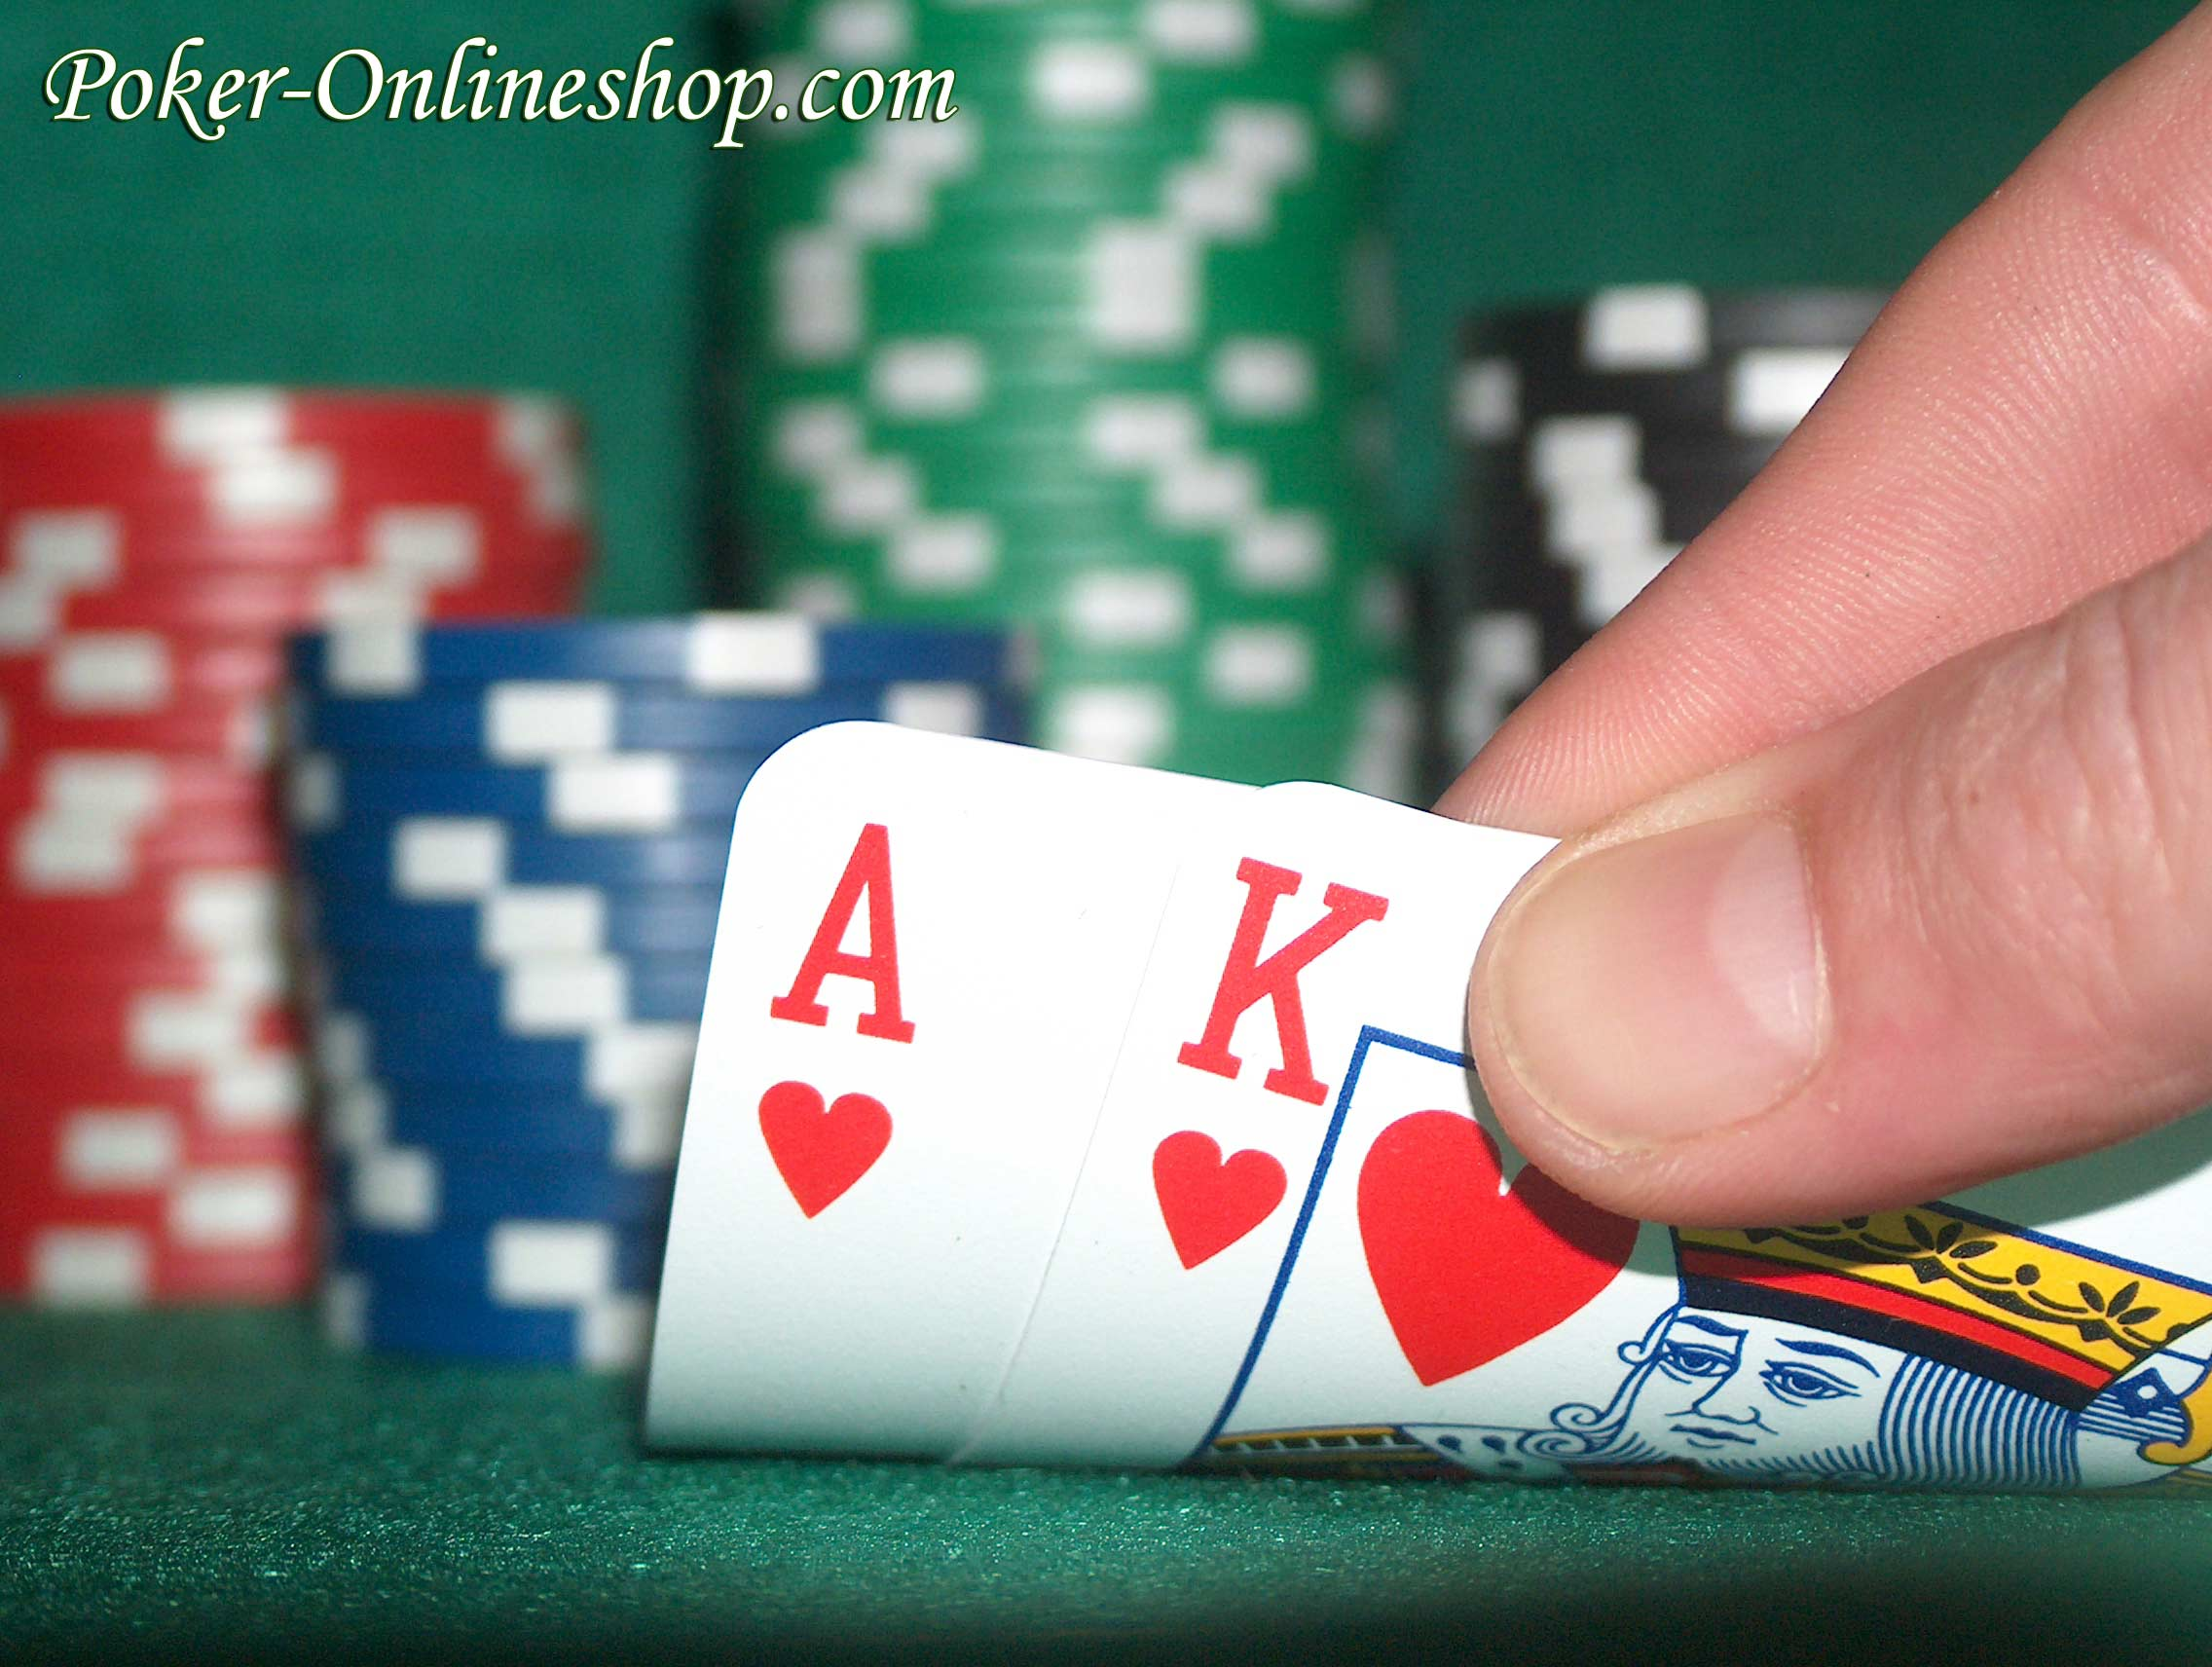 Online poker tournaments for money